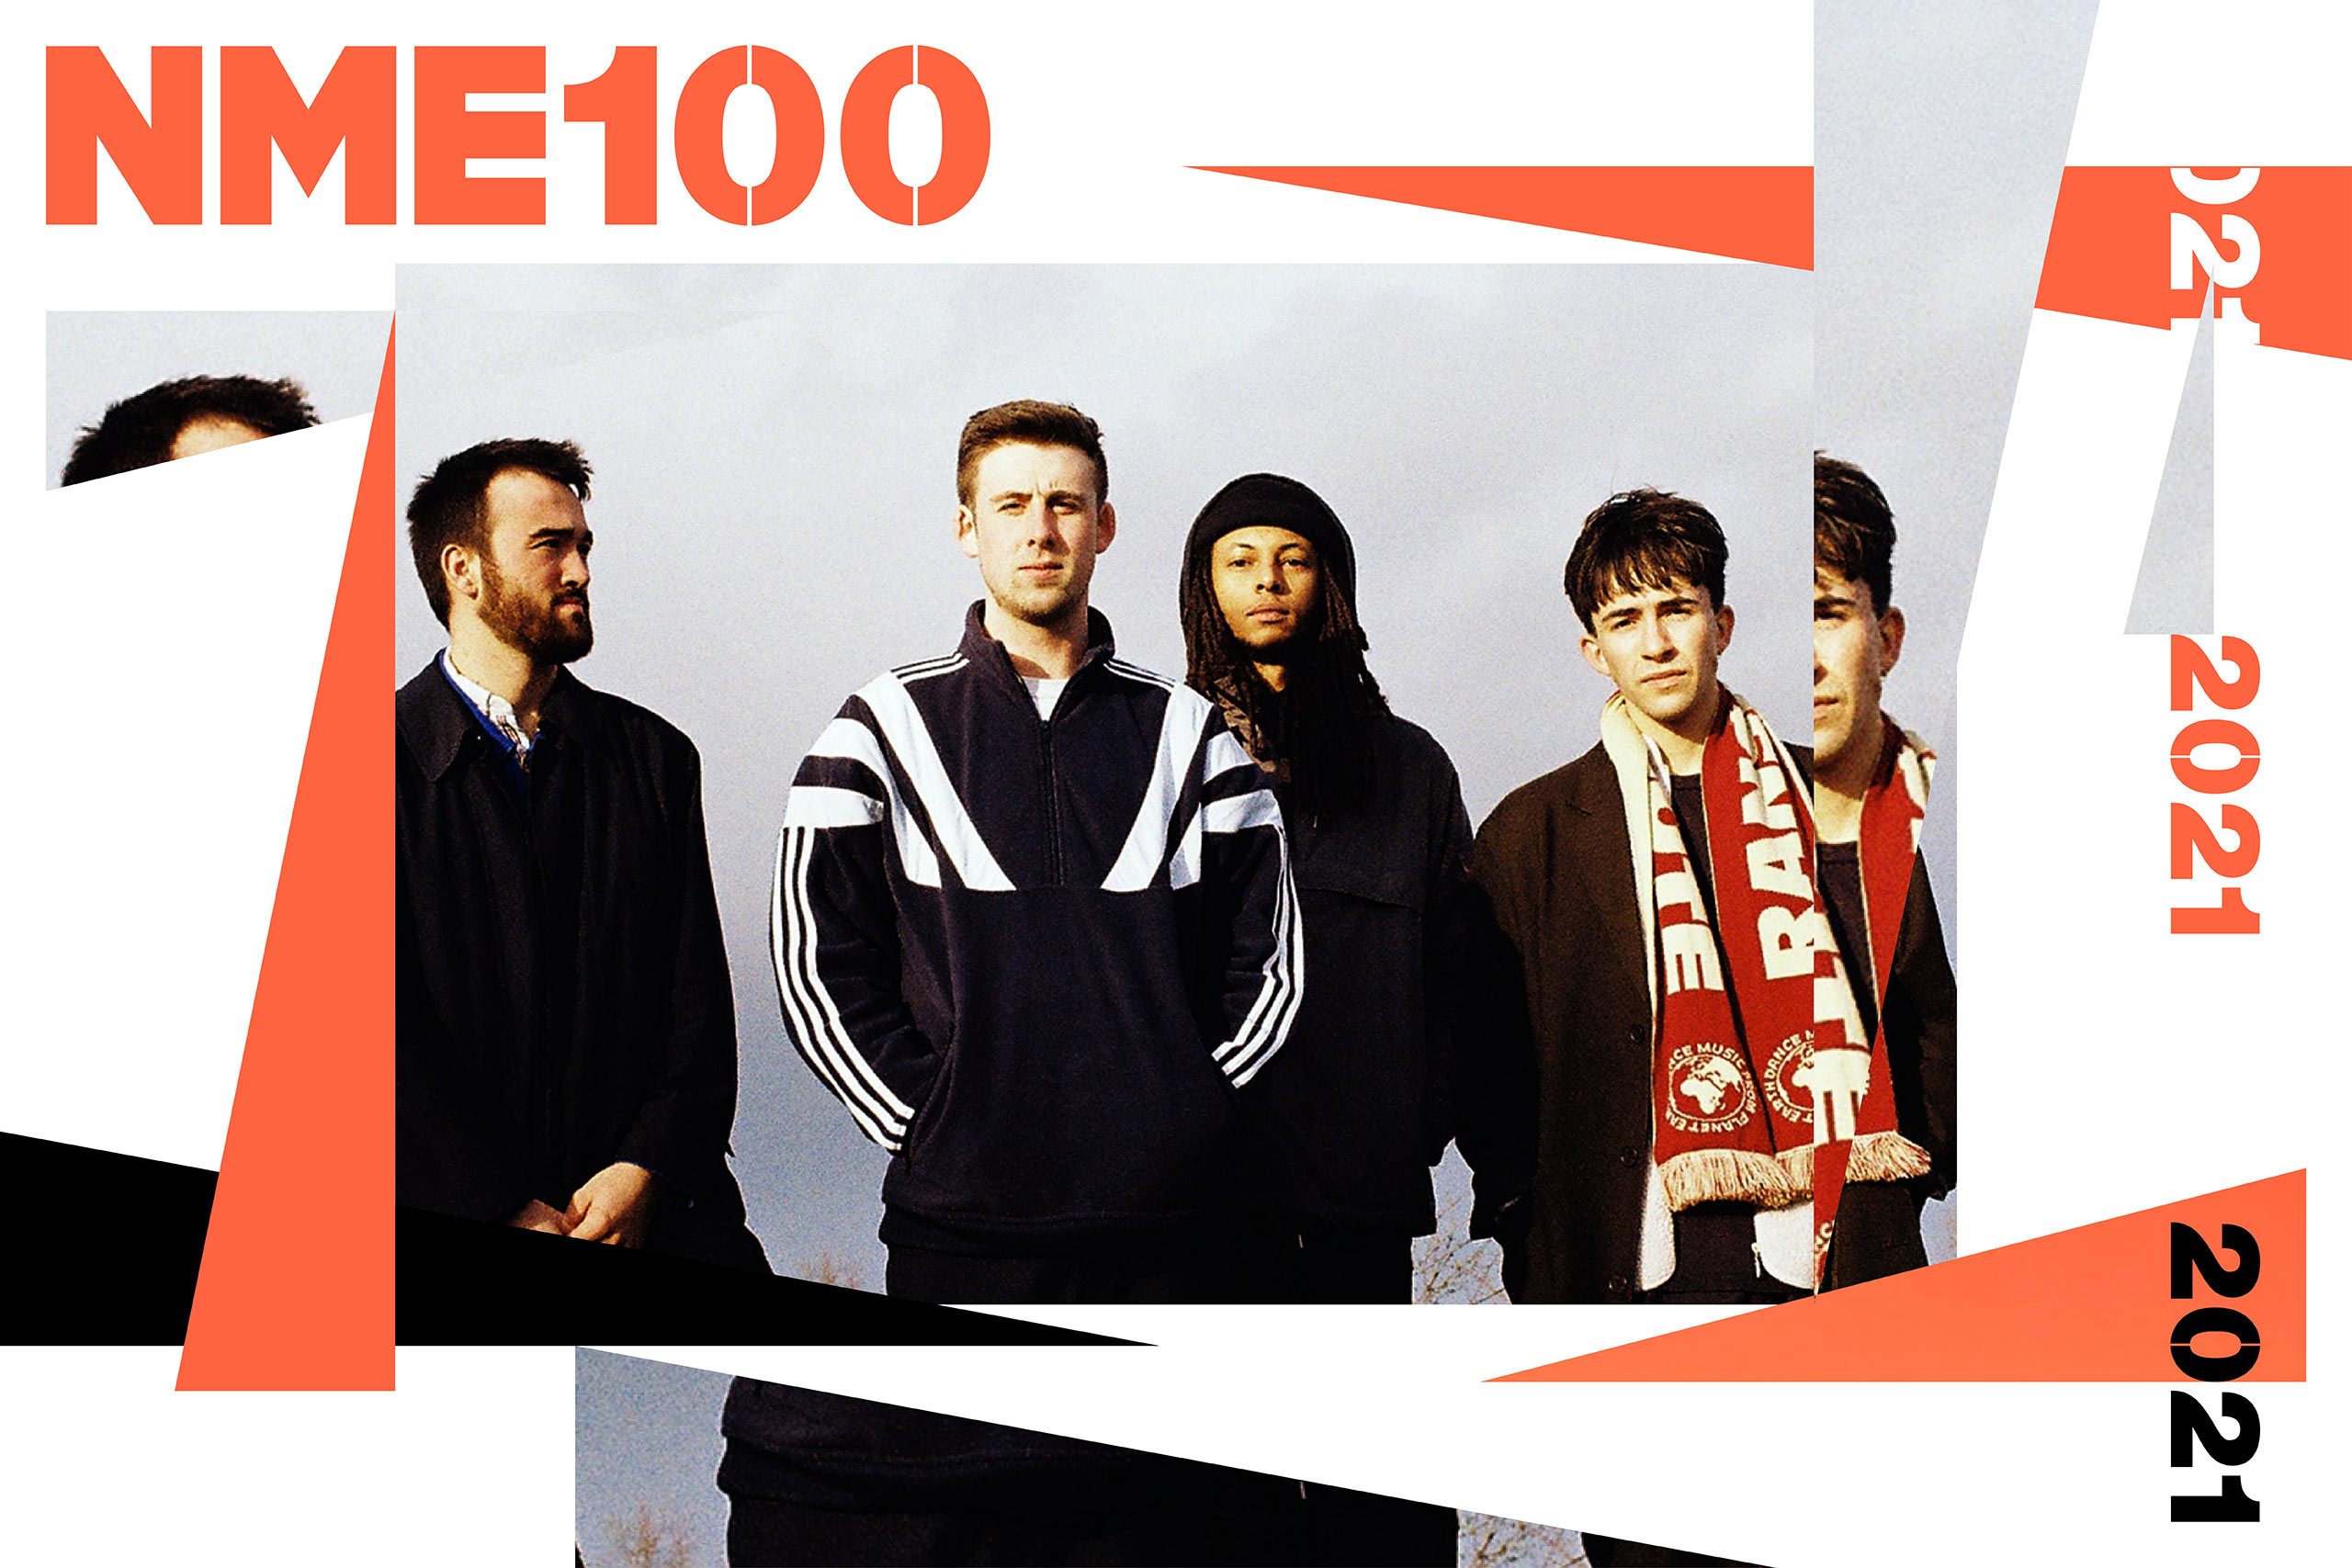 NME 100 folly group